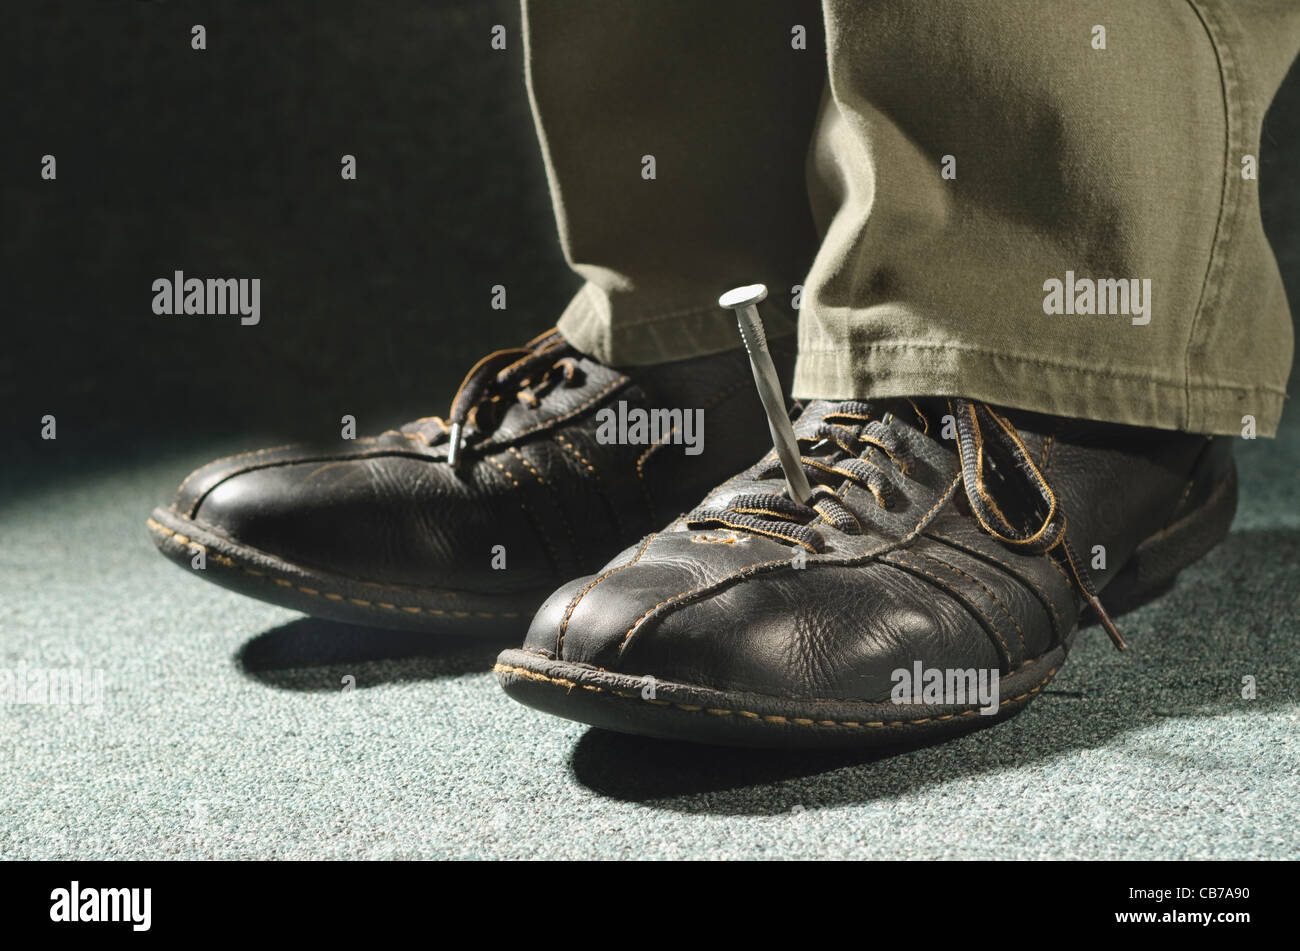 nail spike piercing shoe and foot holding man in place - Stock Image